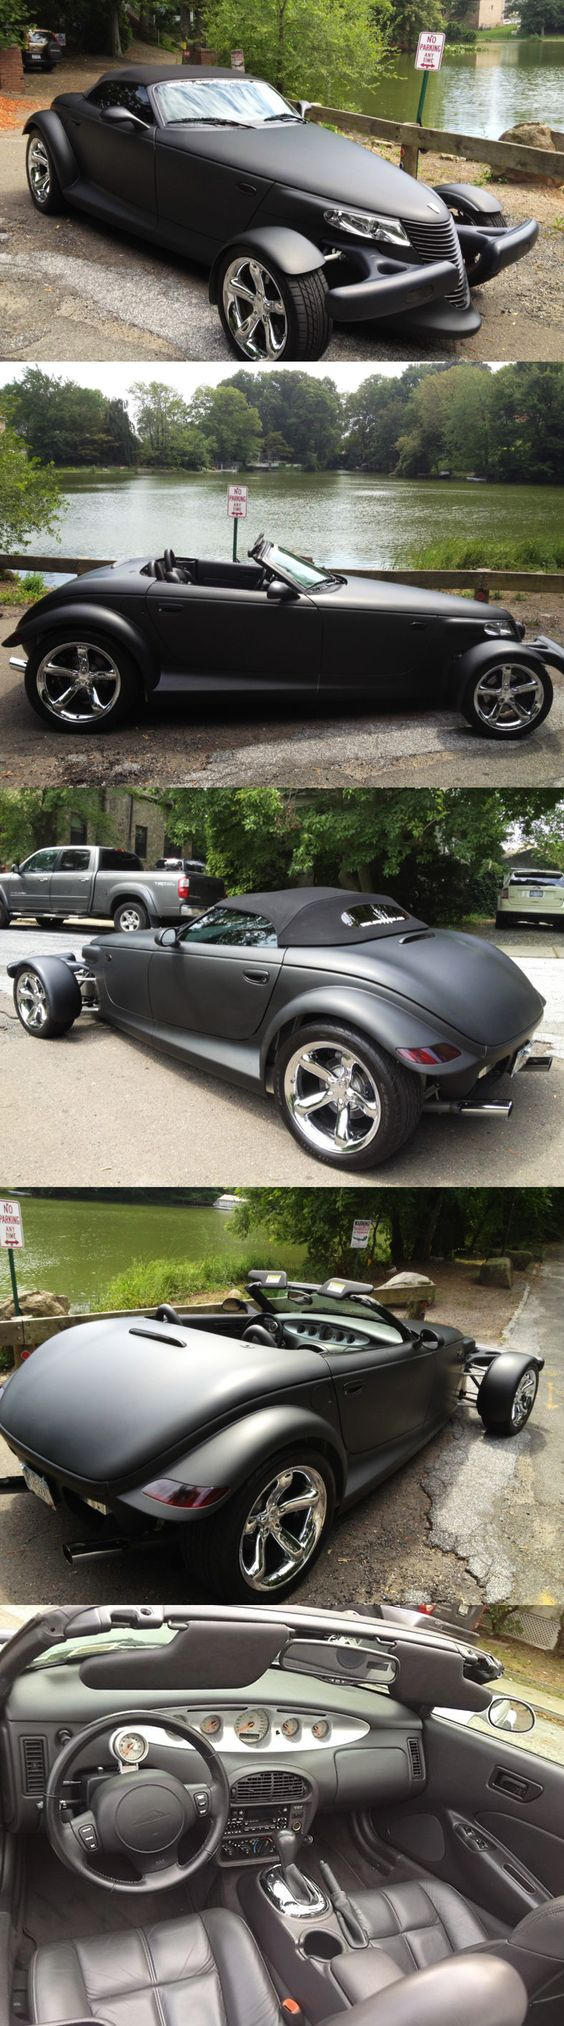 Plymouth Prowler--This car was the first car I ever fell in love with... you never forget your first love!